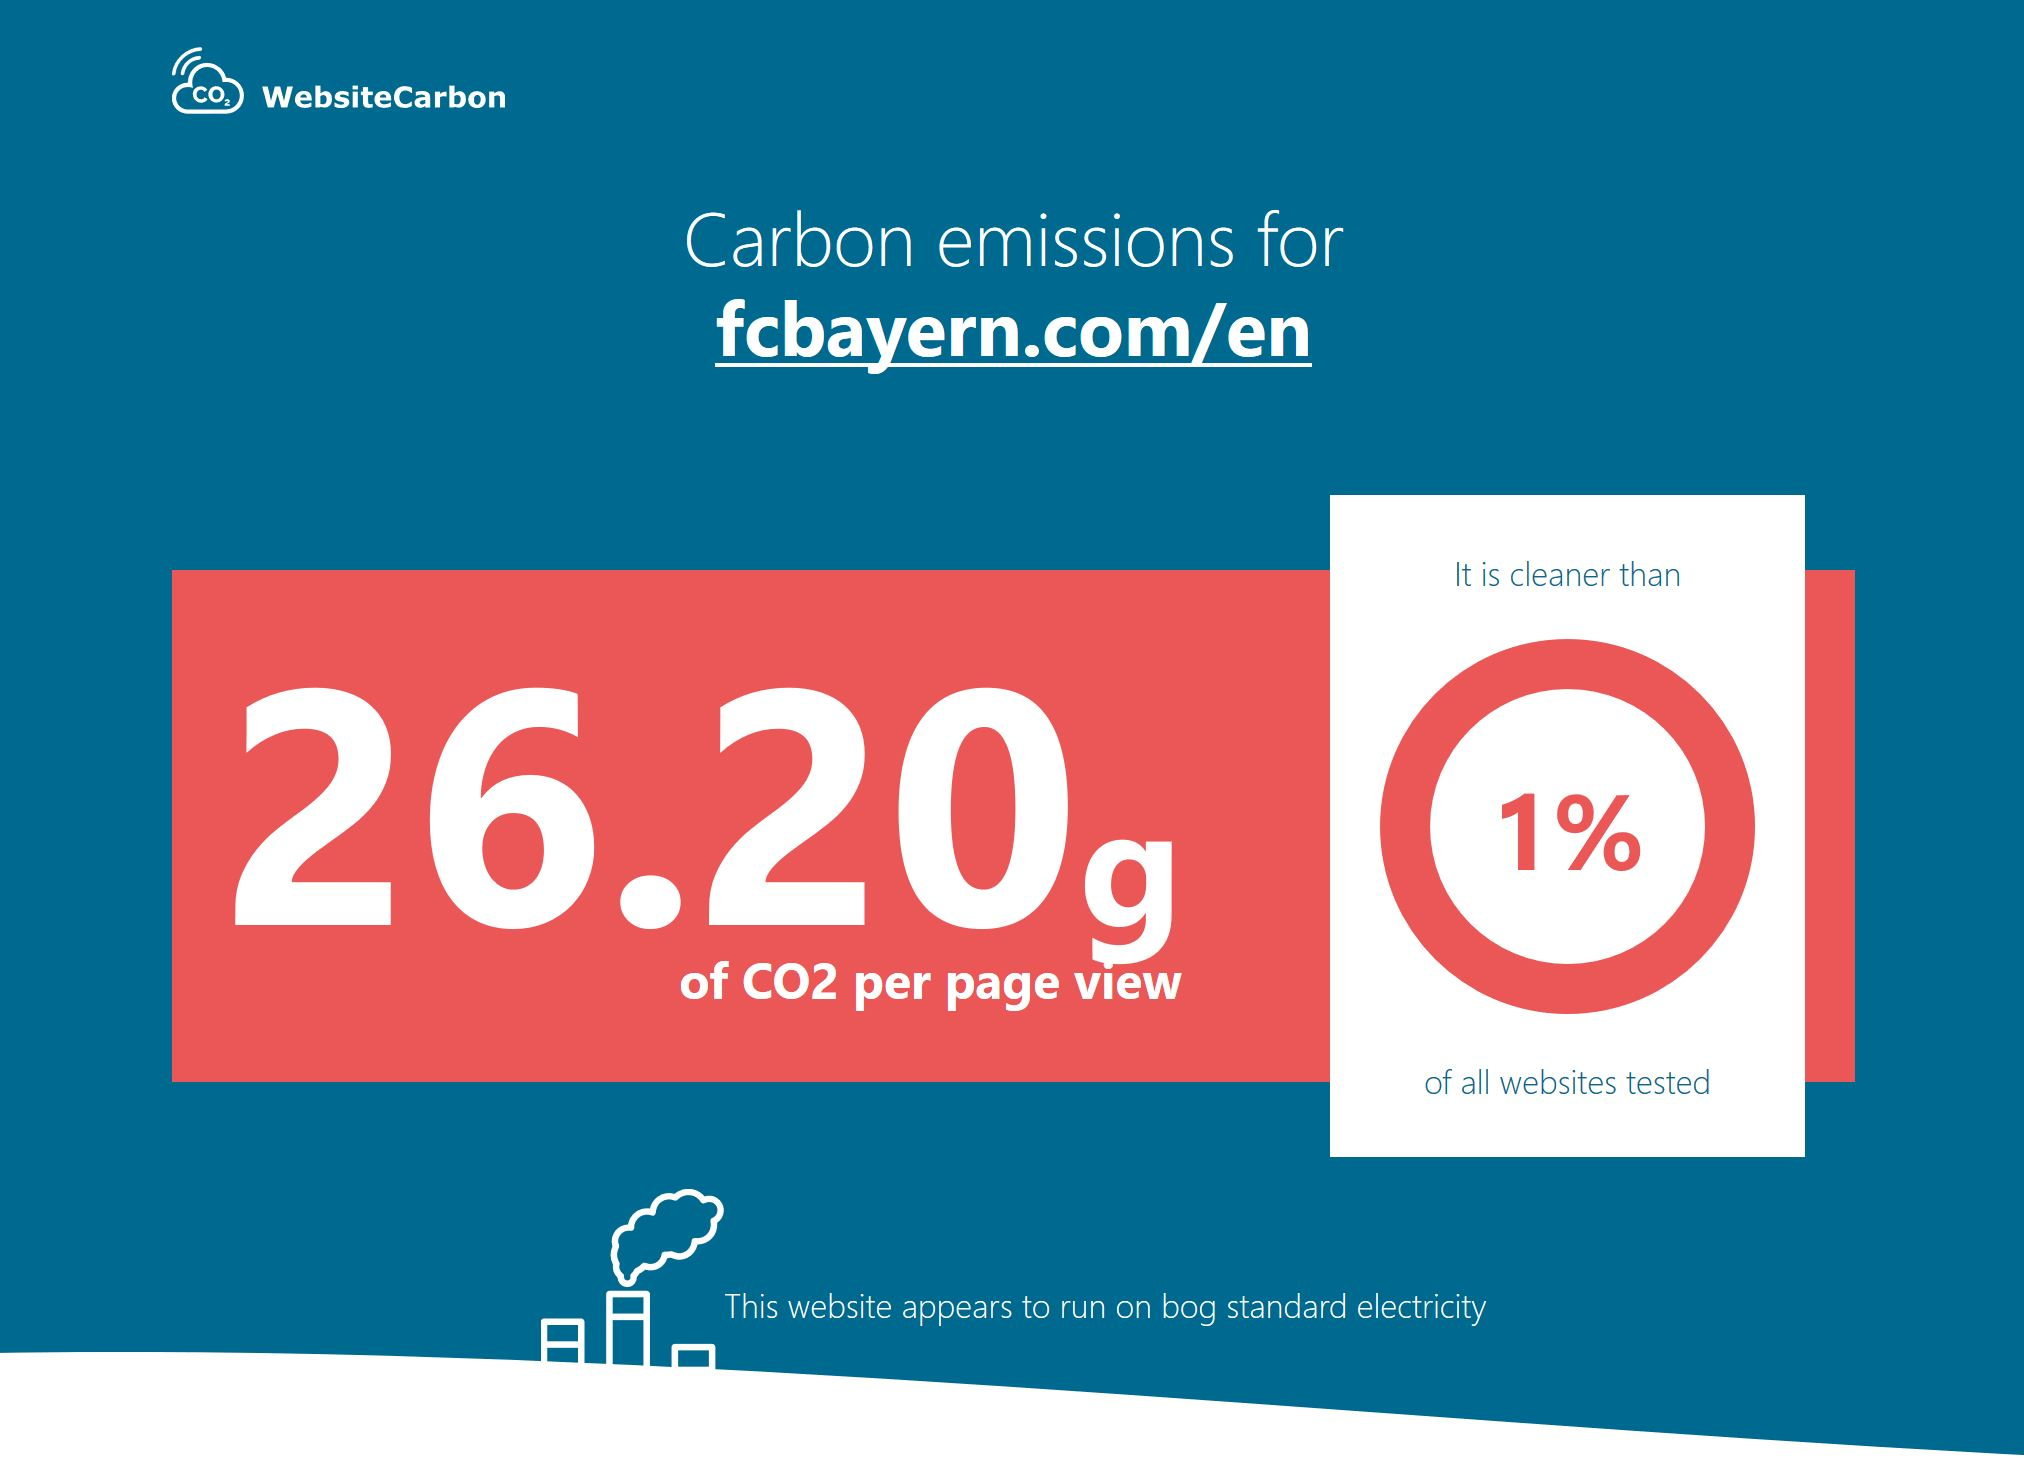 Screenshot of the carbon calculator results showing that FCBayern.com is in the bottom 1% of all websites in terms of carbon emissions